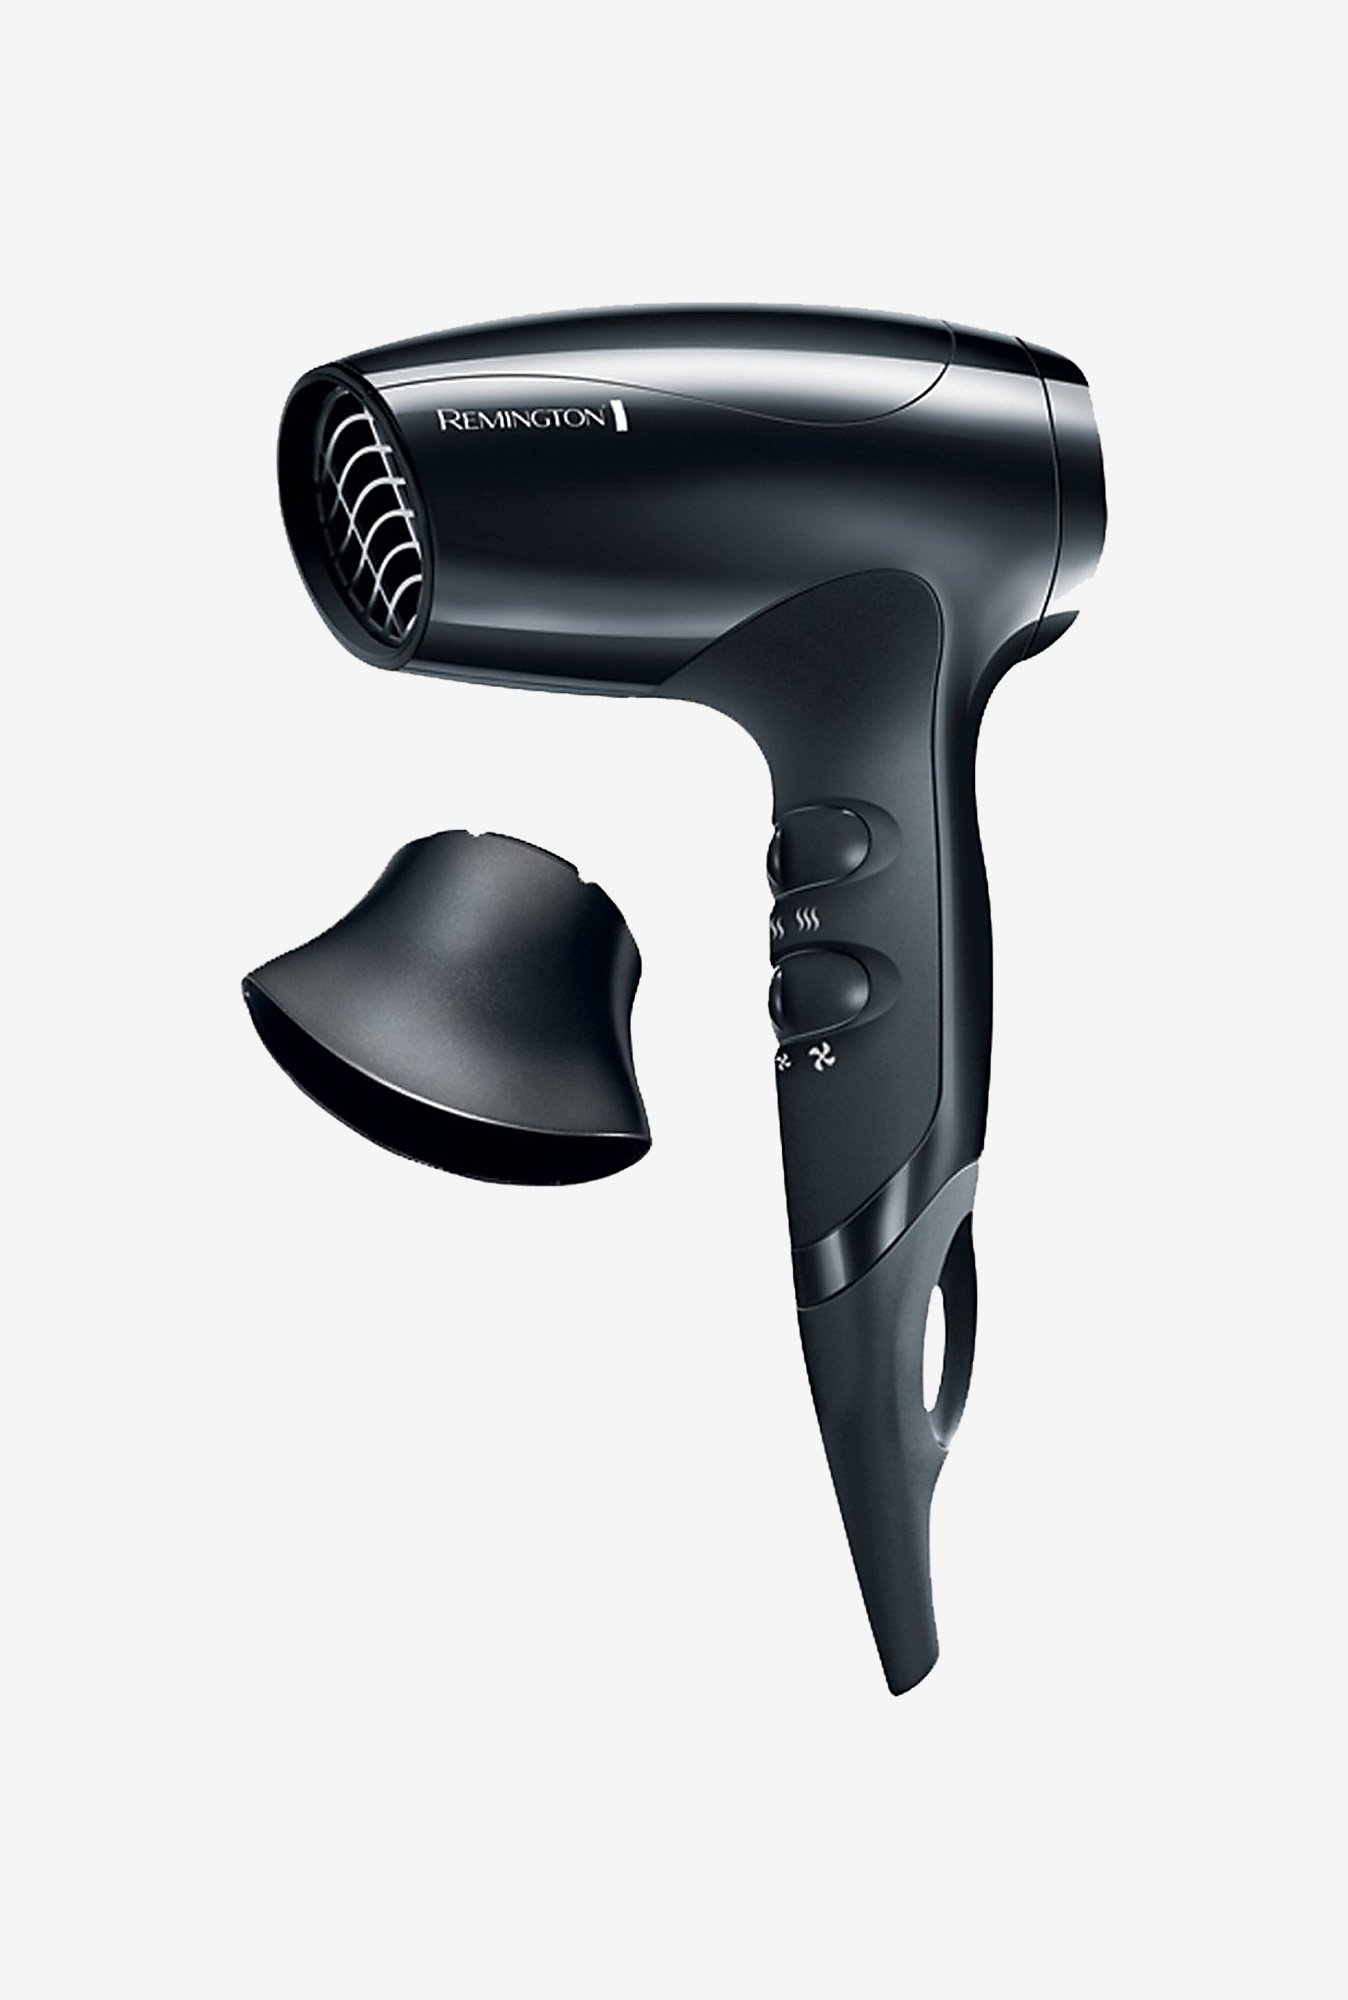 Remington D5000 1800 Watt Hair Dryer (Black)